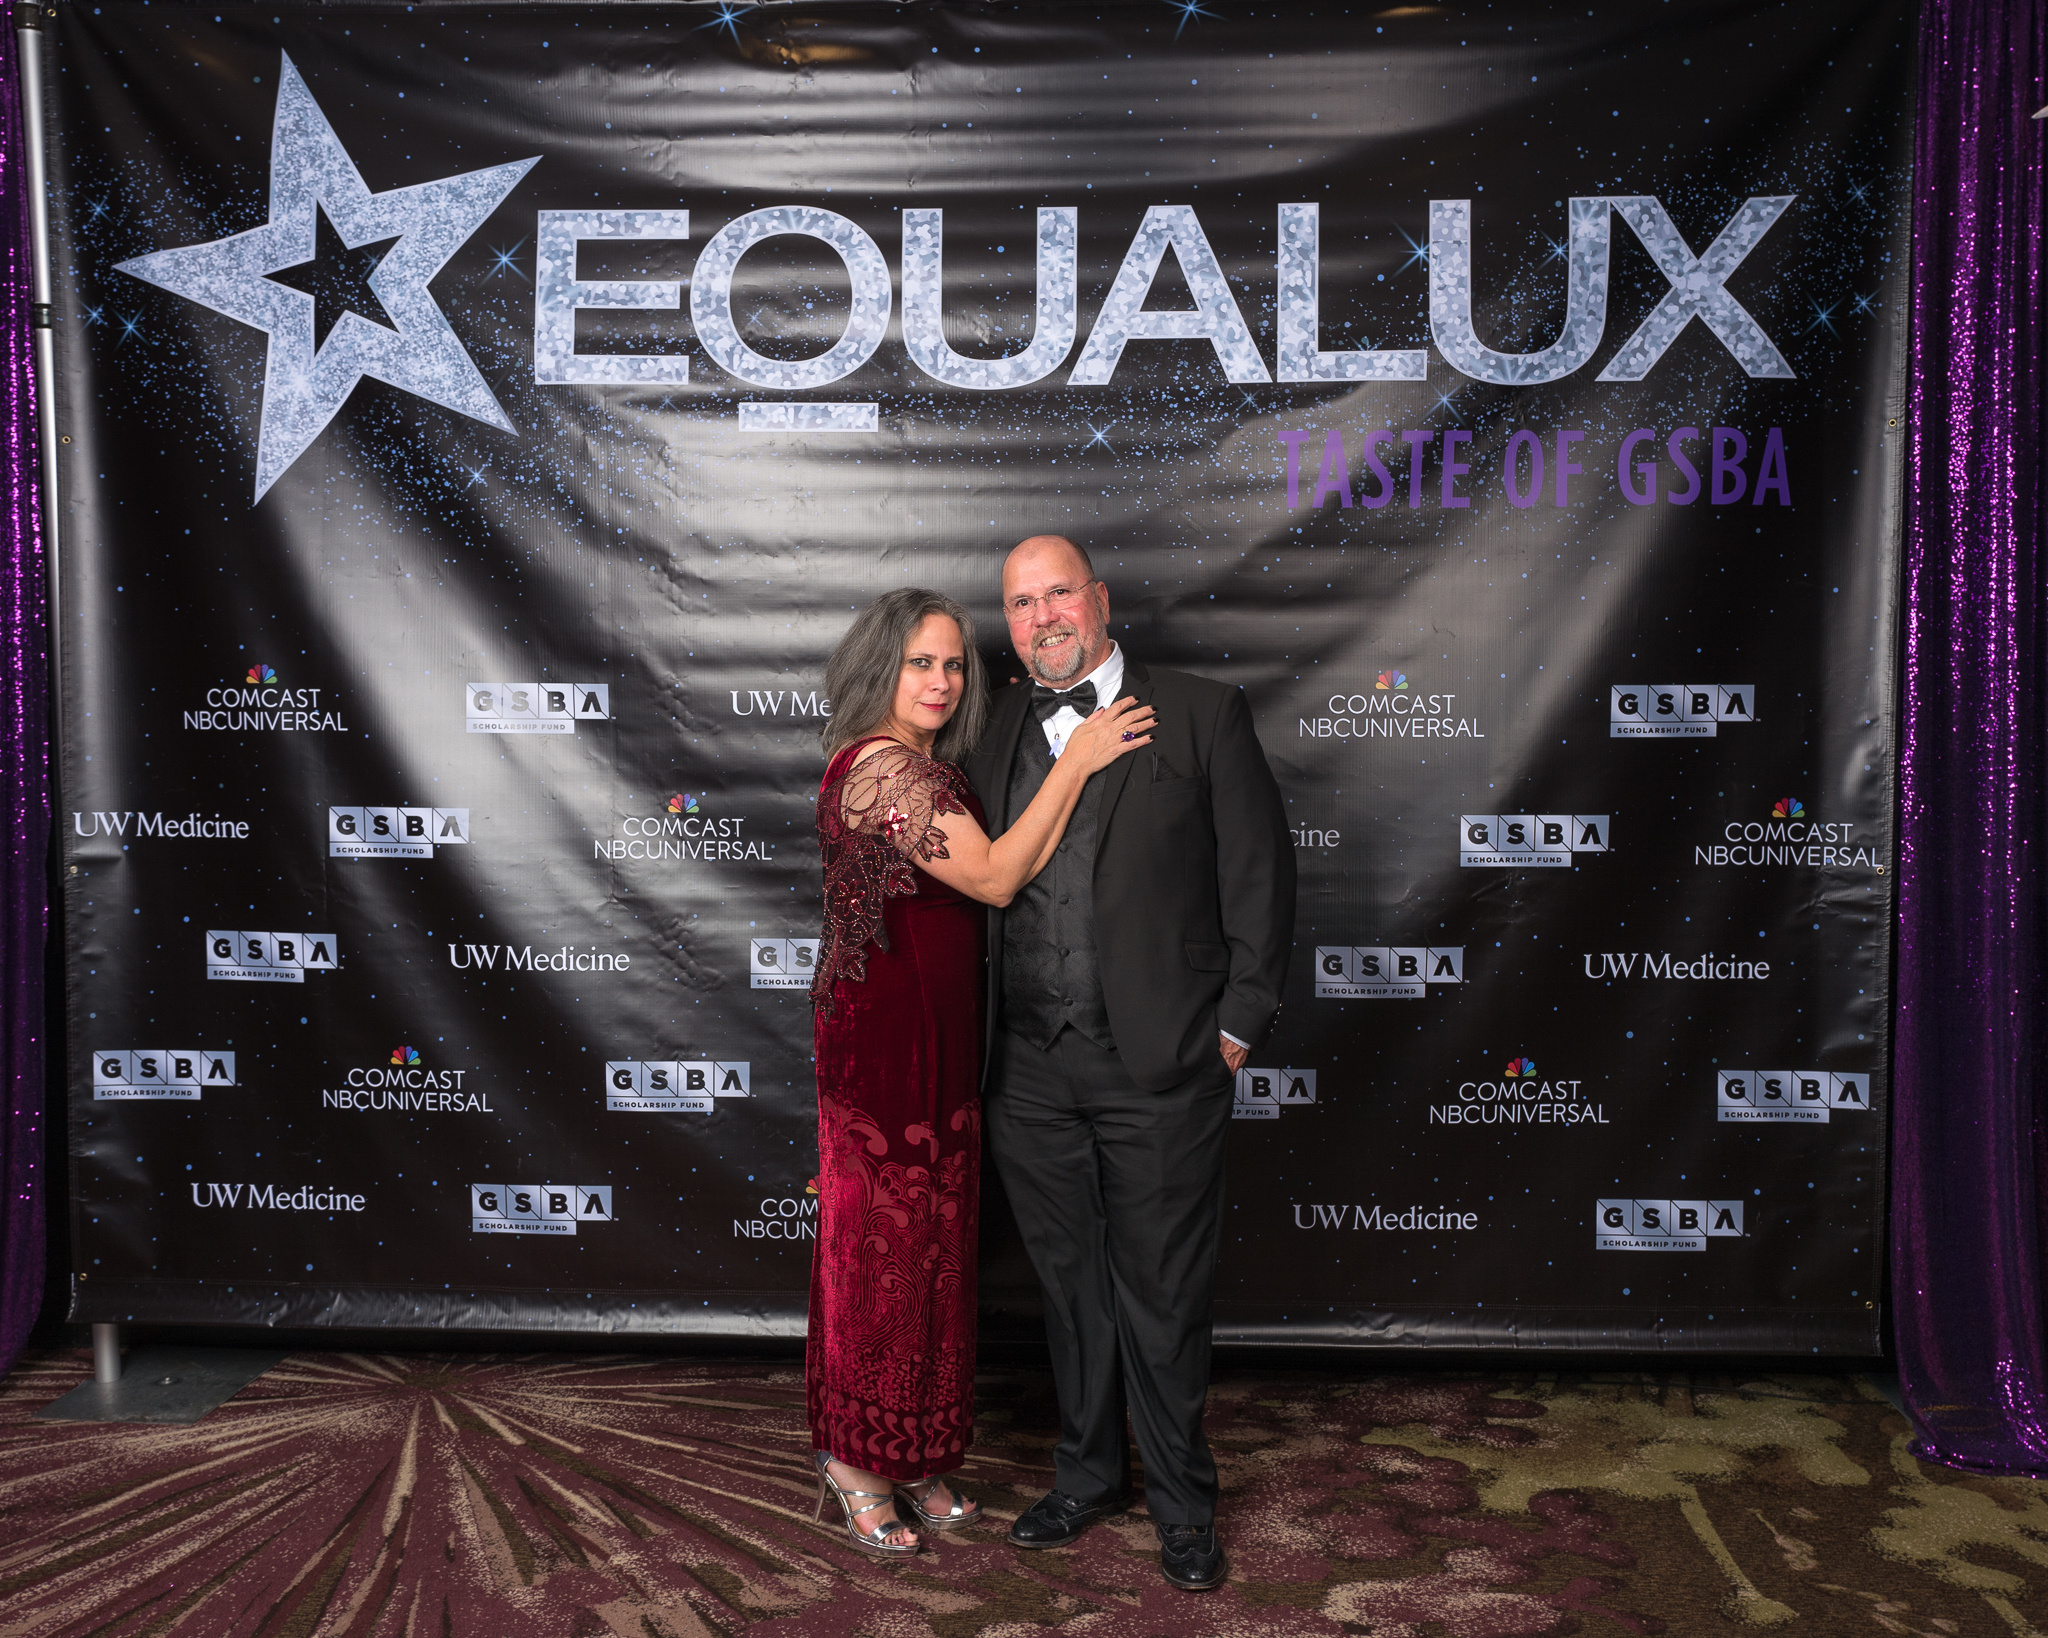 111718_GSBA EQUALUX at The Westin Seattle (Credit- Nate Gowdy)-43.jpg